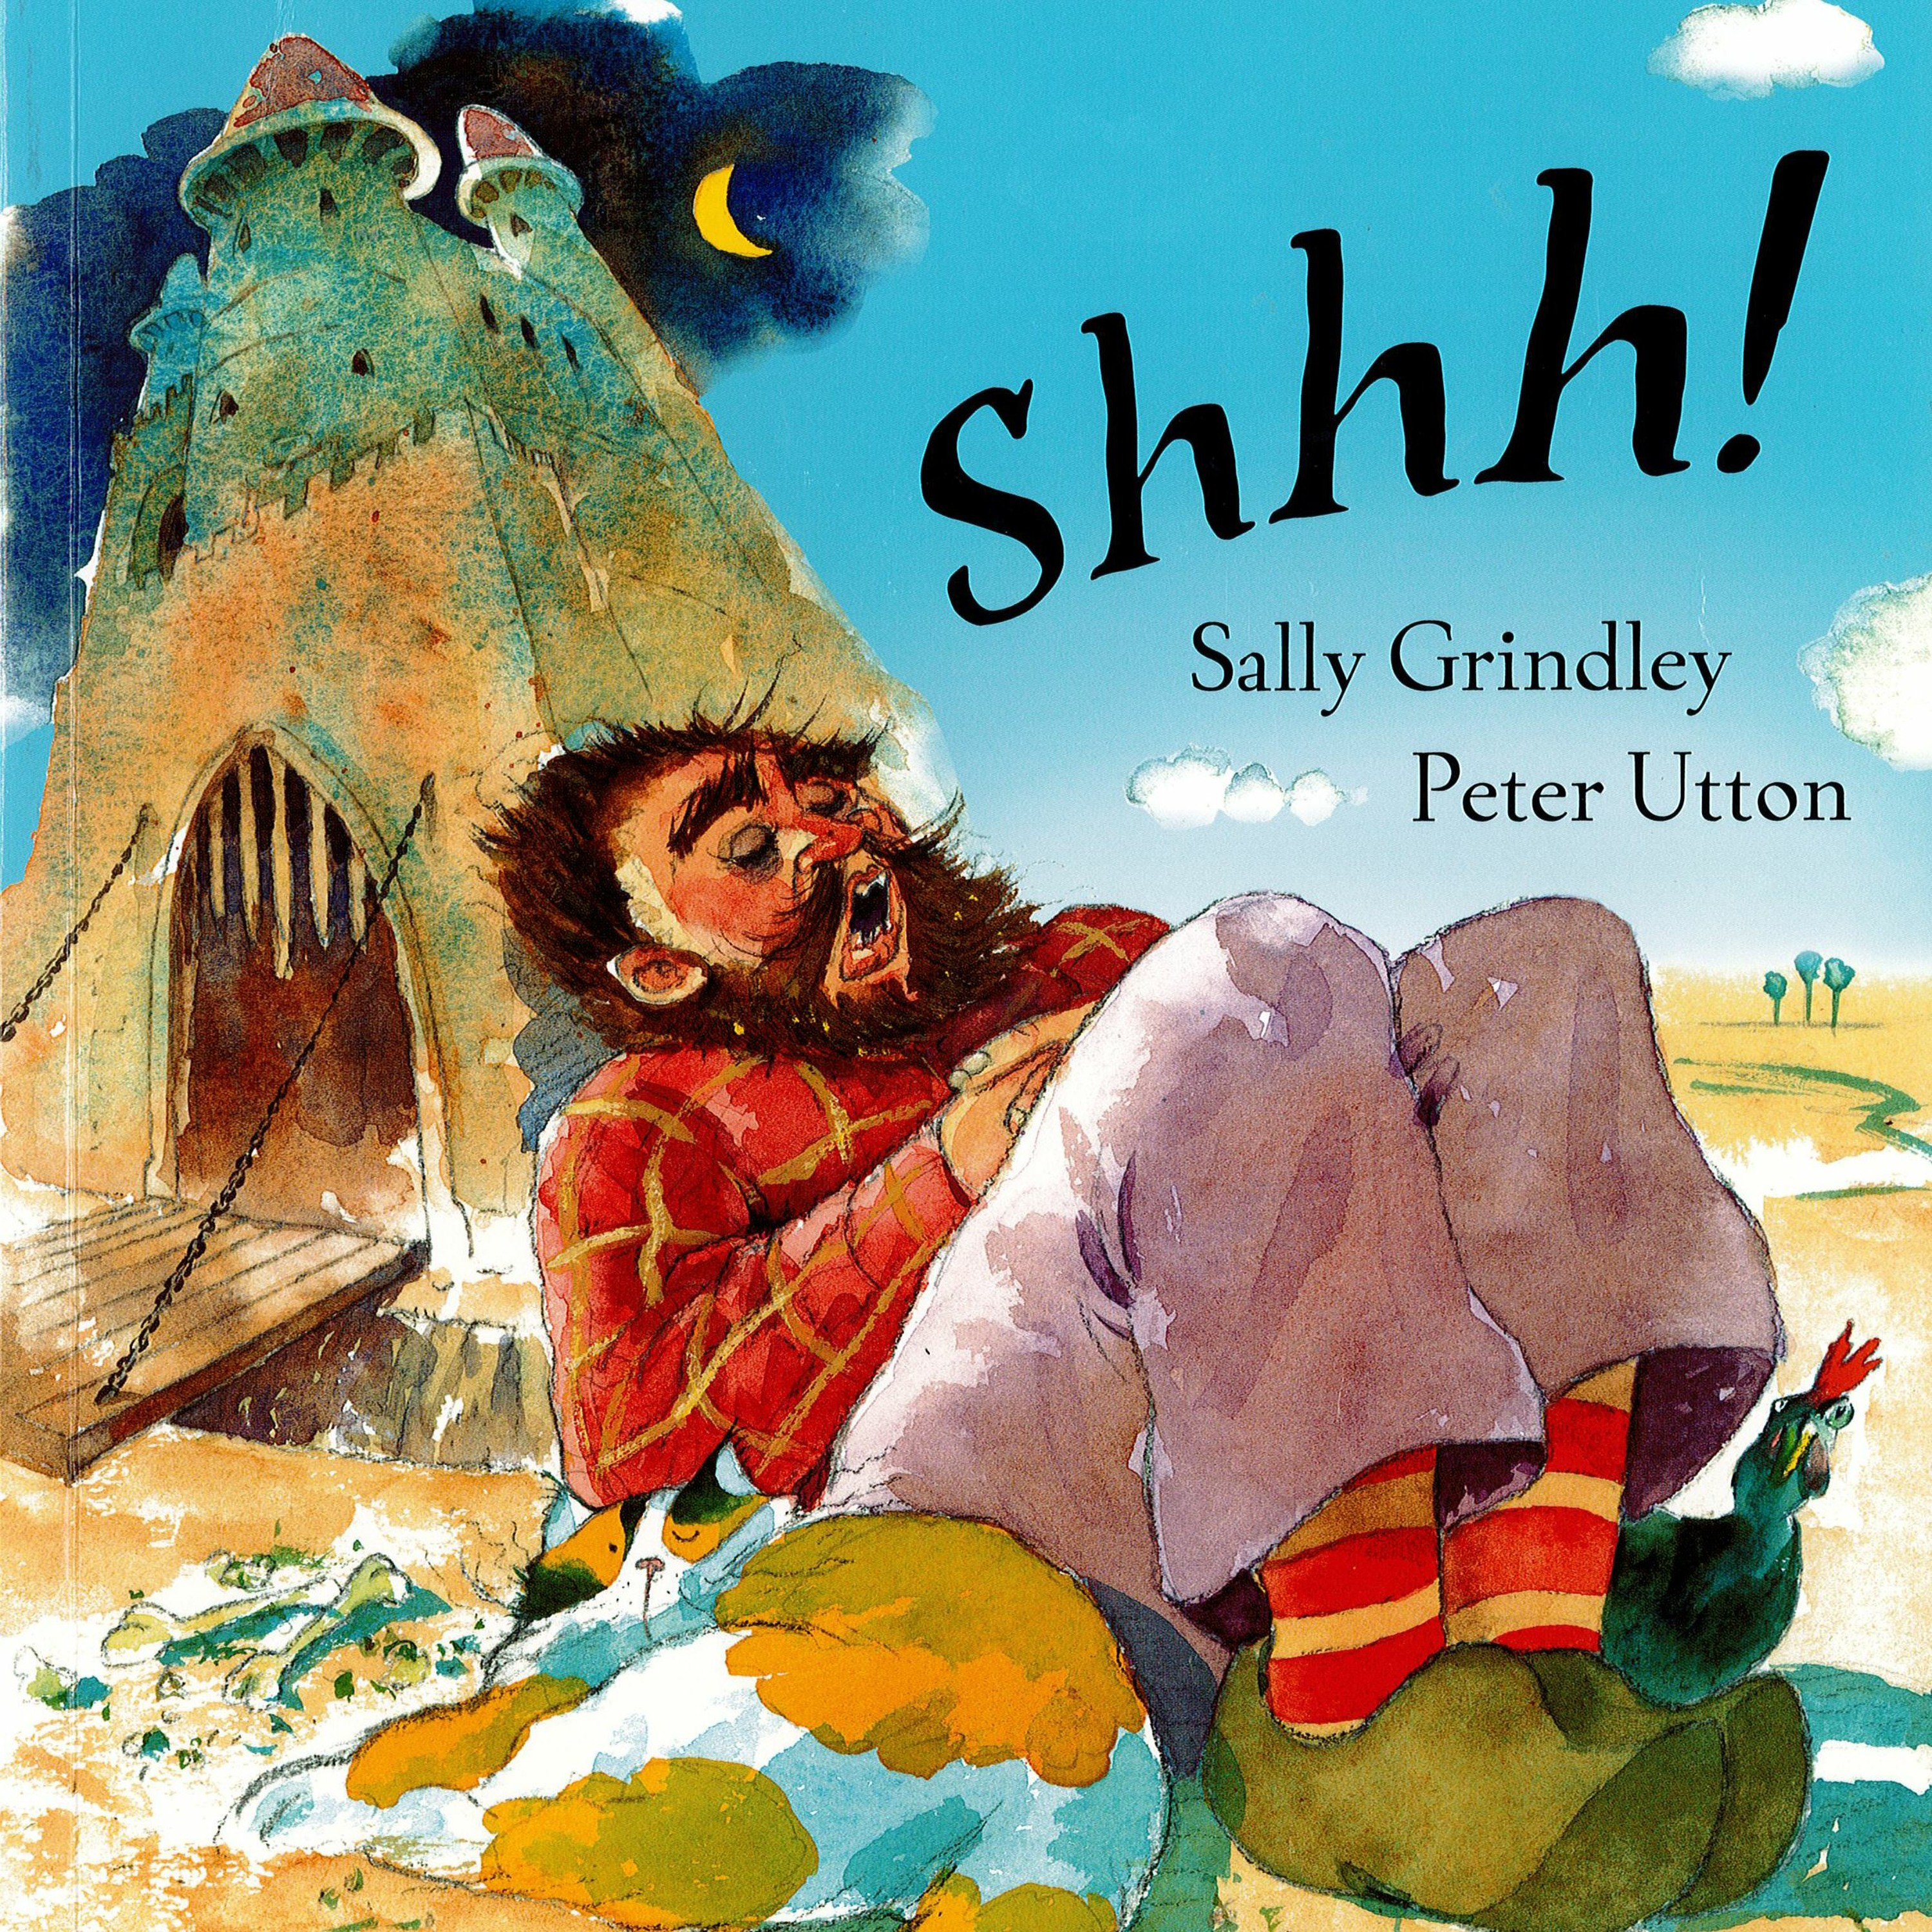 Shhh by Sally Grindley & Peter Utton